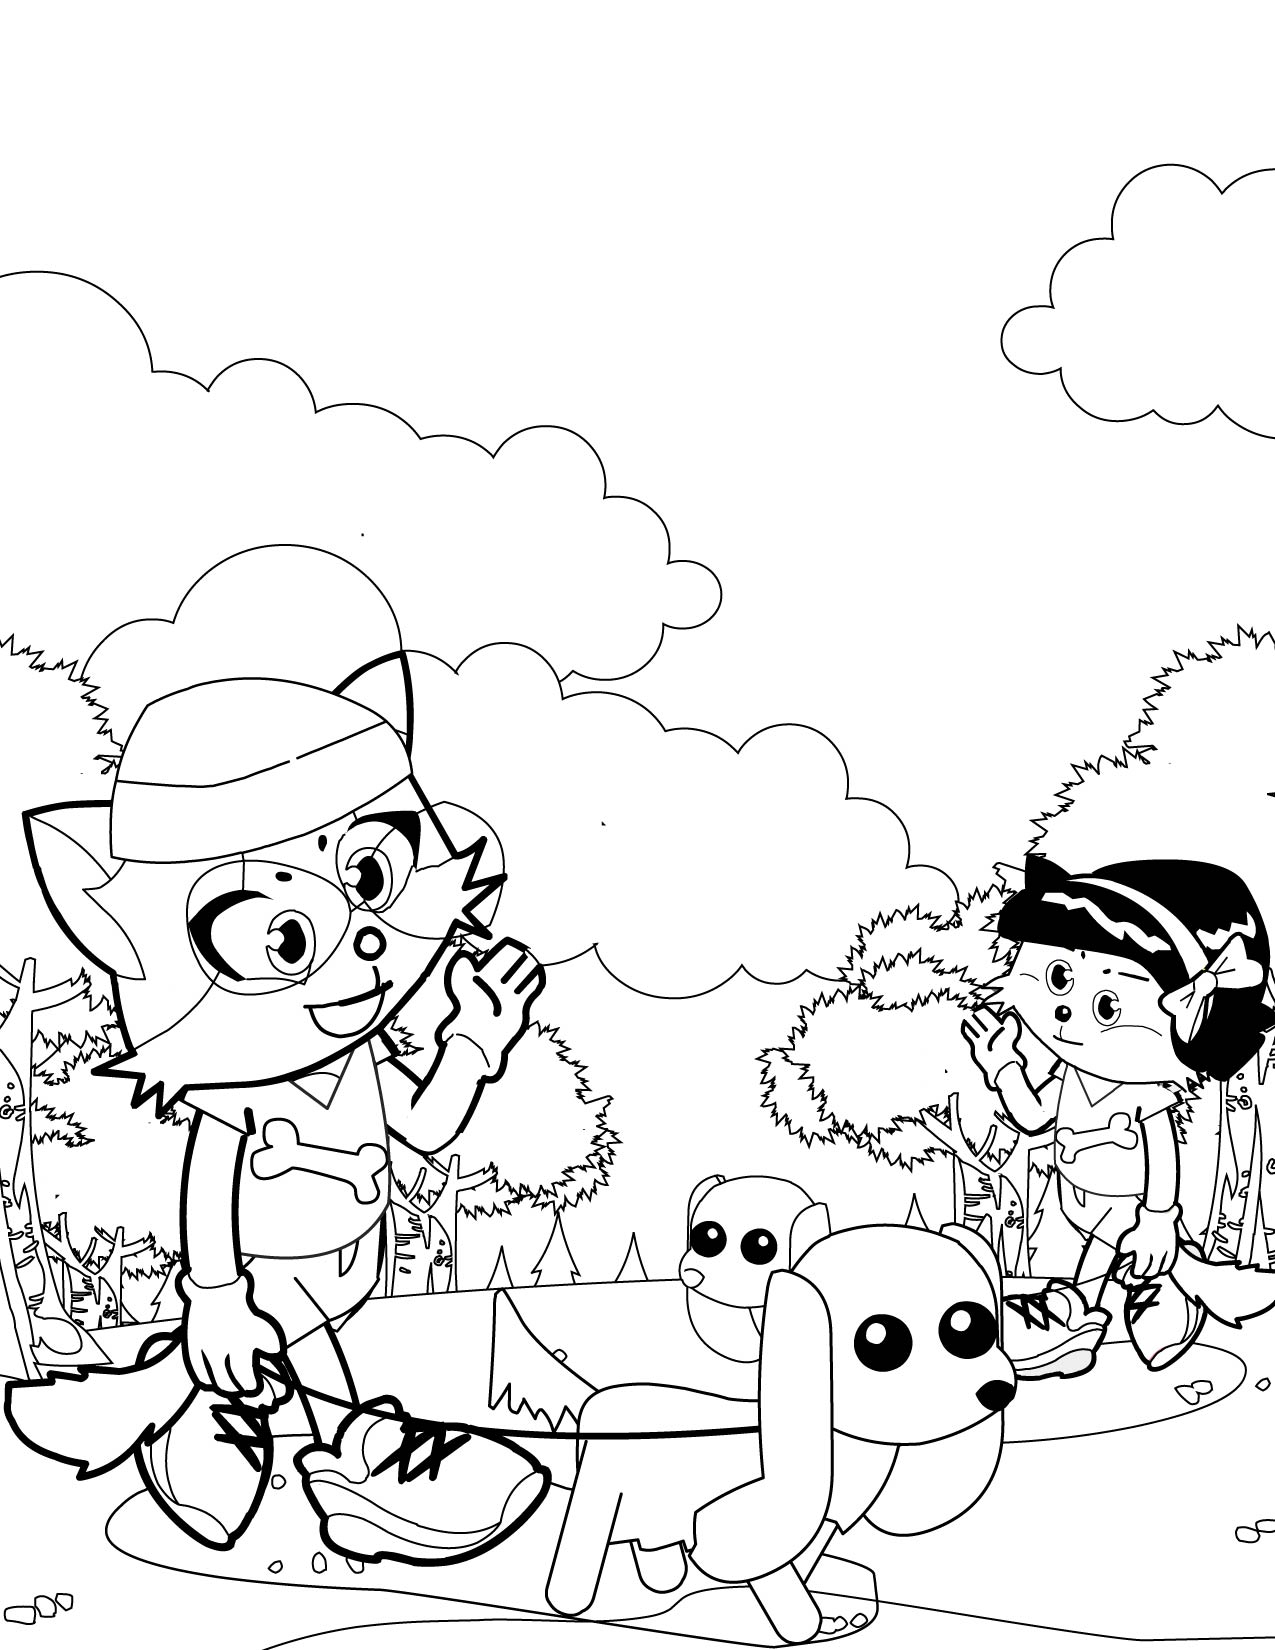 Dog Walking Away Coloring Pages